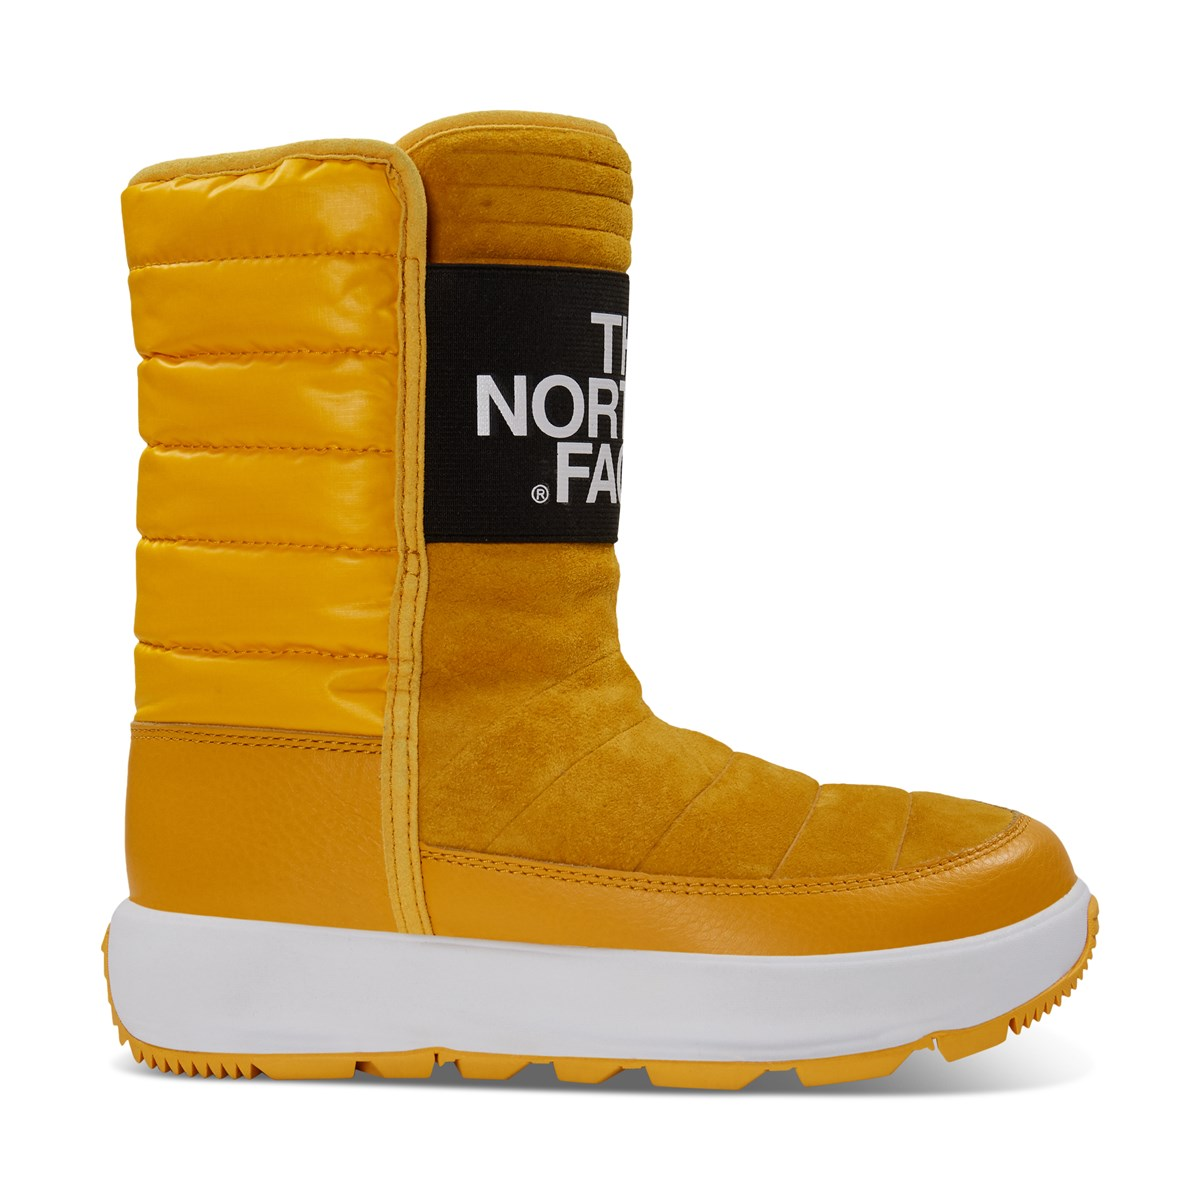 Women's Ozone Park Winter Pull-On Boots in Yellow